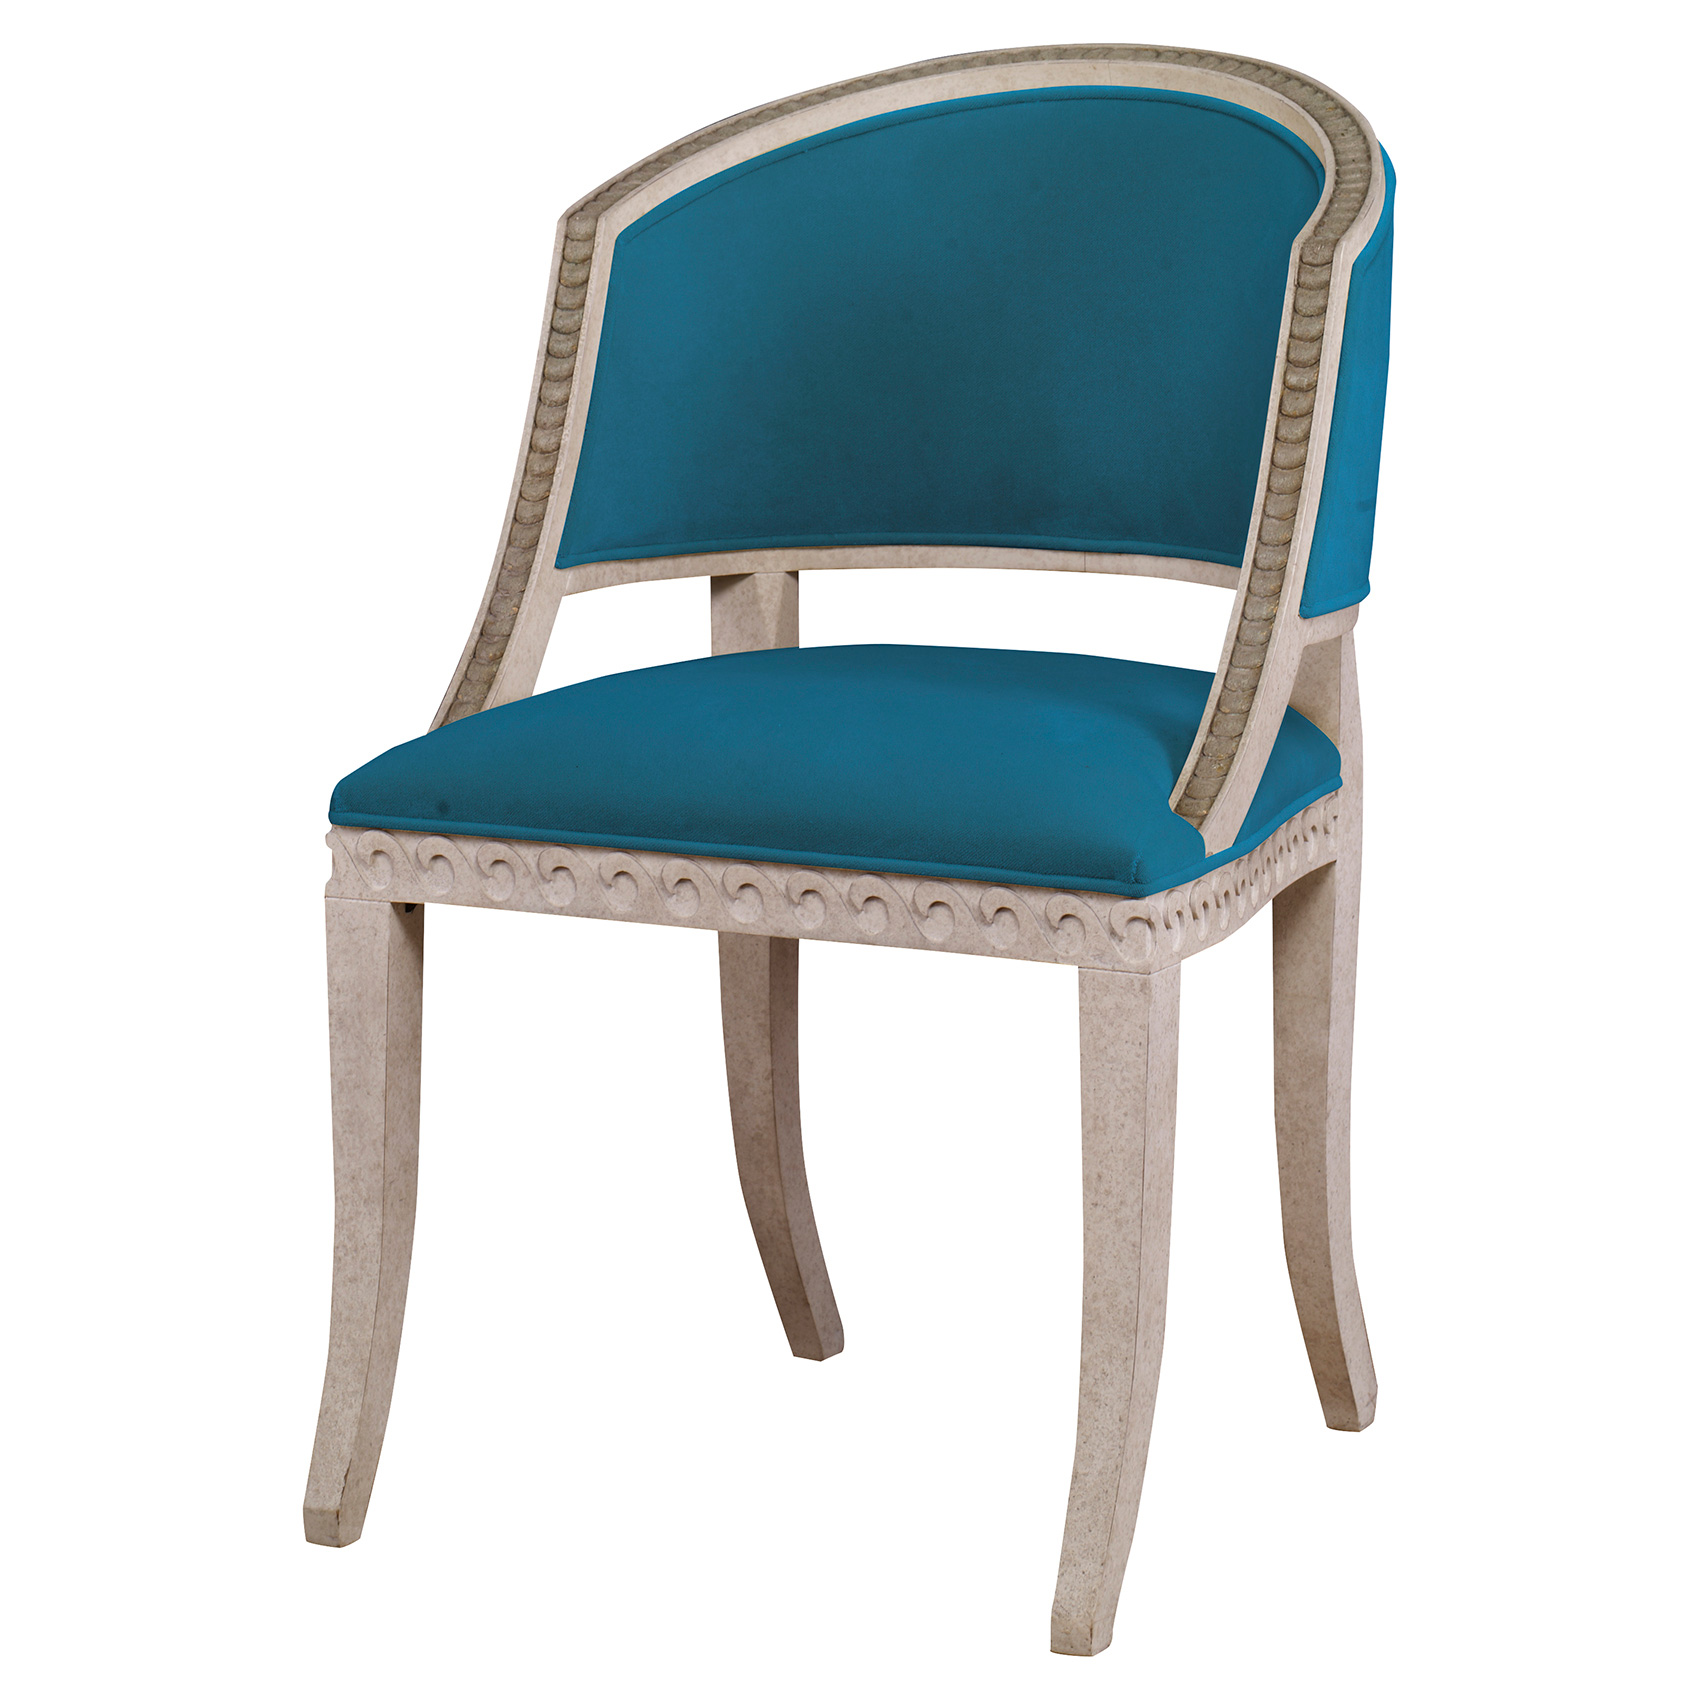 Augusta Regency Gilt Wave Chair - Prussian Teal Velvet